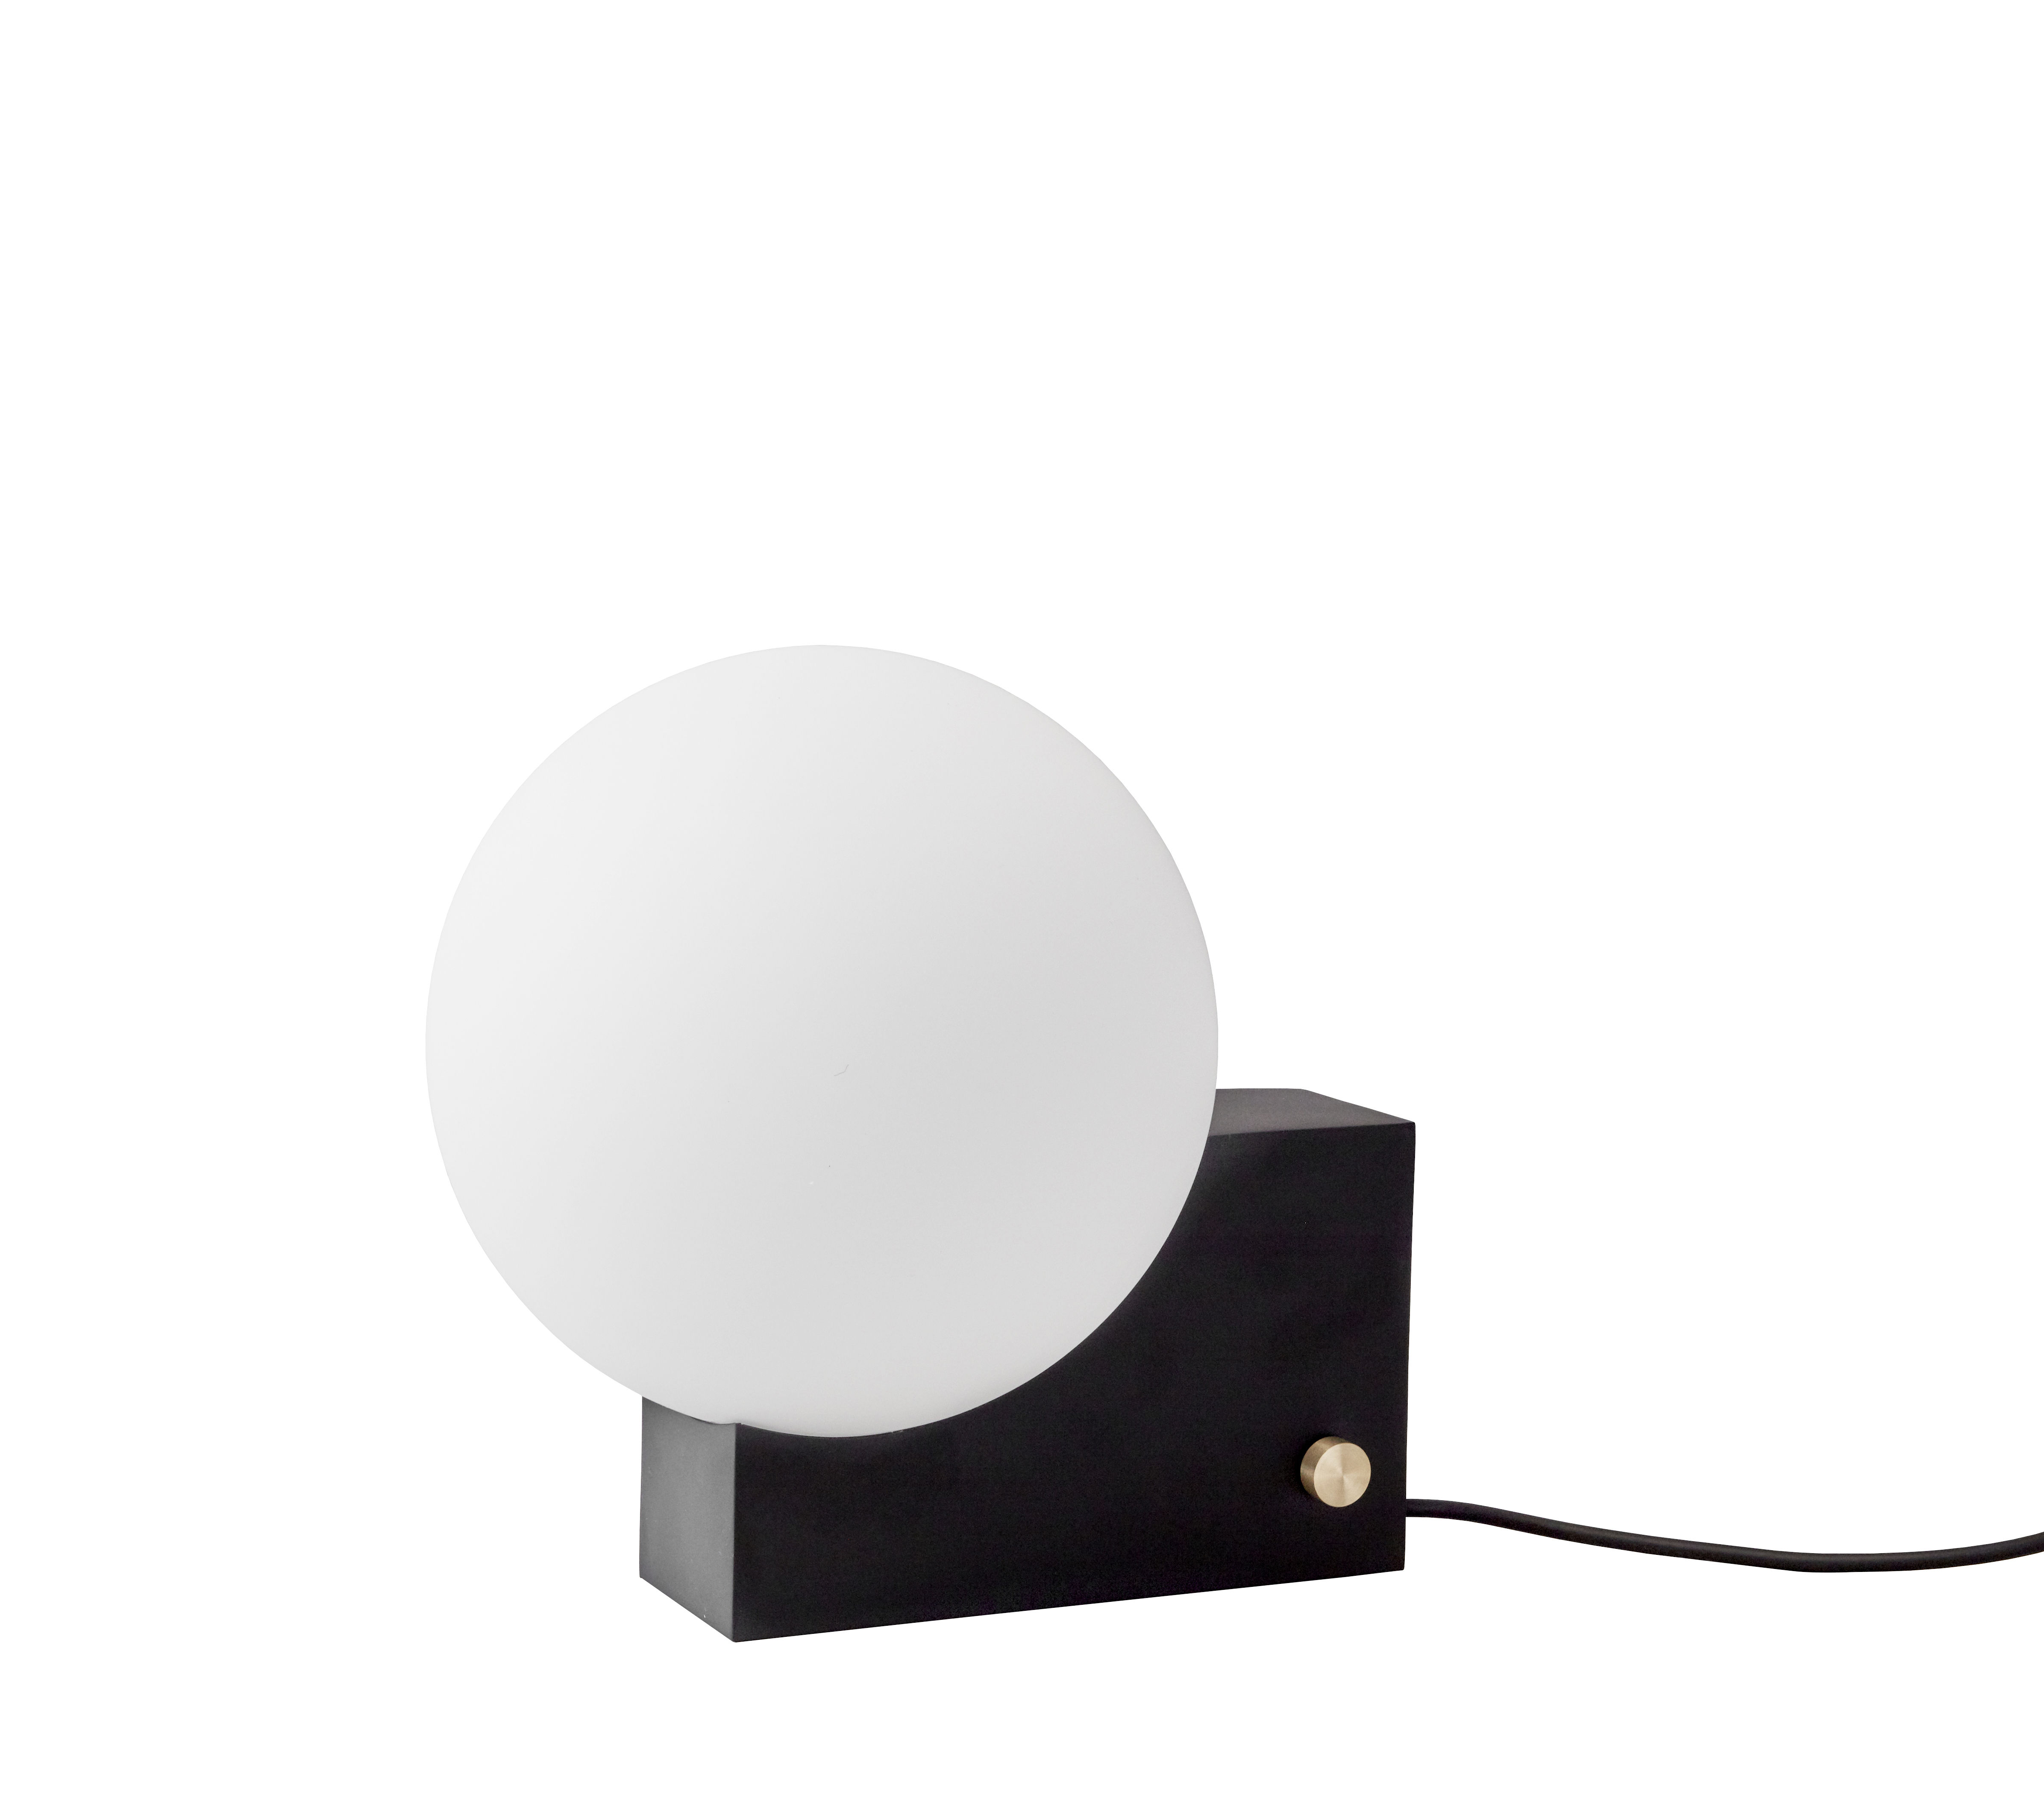 Lighting - Table Lamps - Journey SHY1 Table lamp - / Wall light - H 24 cm by &tradition - Black - Brass, Steel, Verre opalin soufflé bouche